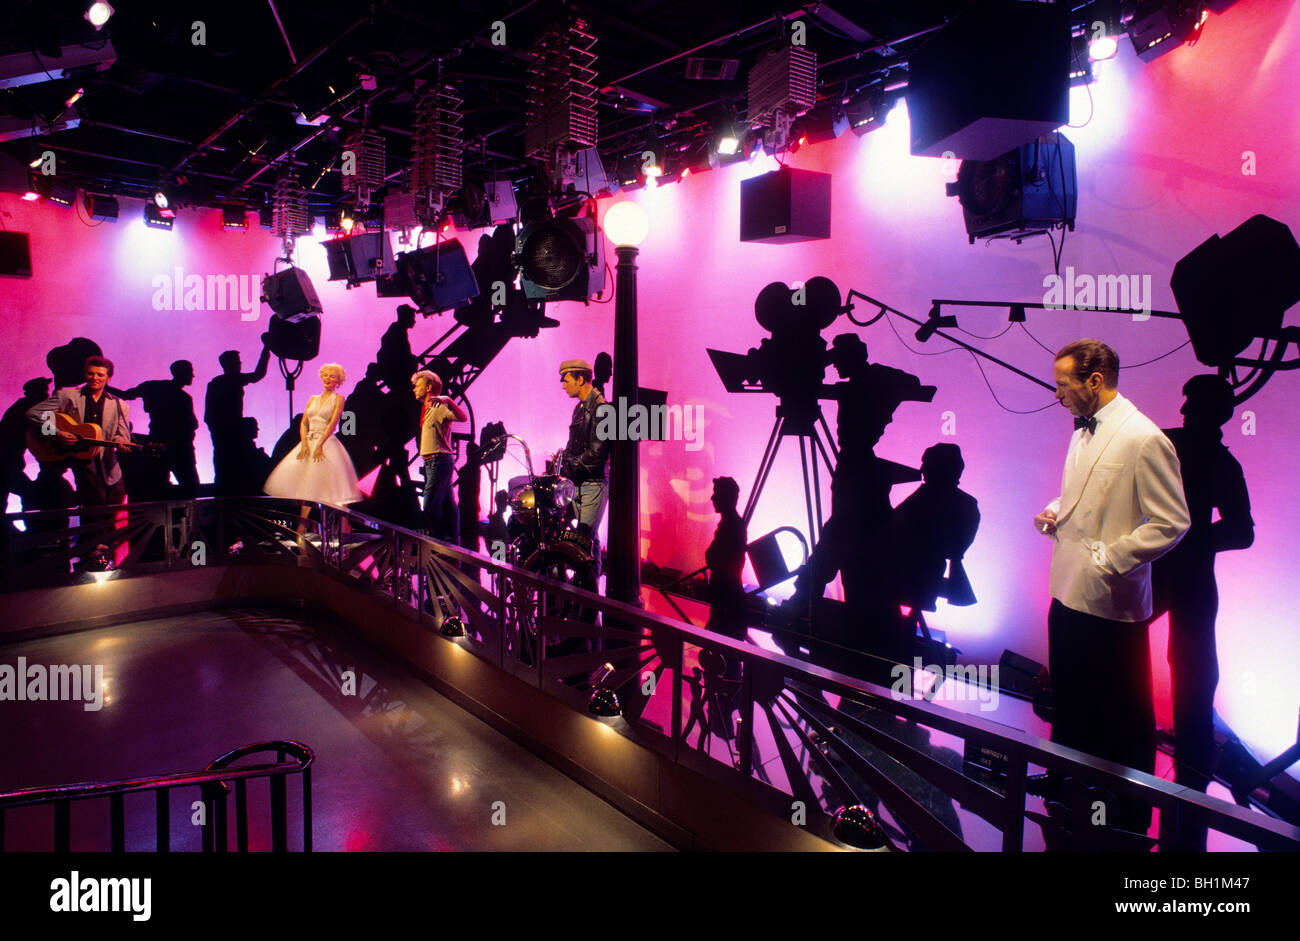 Europe, Great Britain, England, London, Madame Tussauds - Stock Image